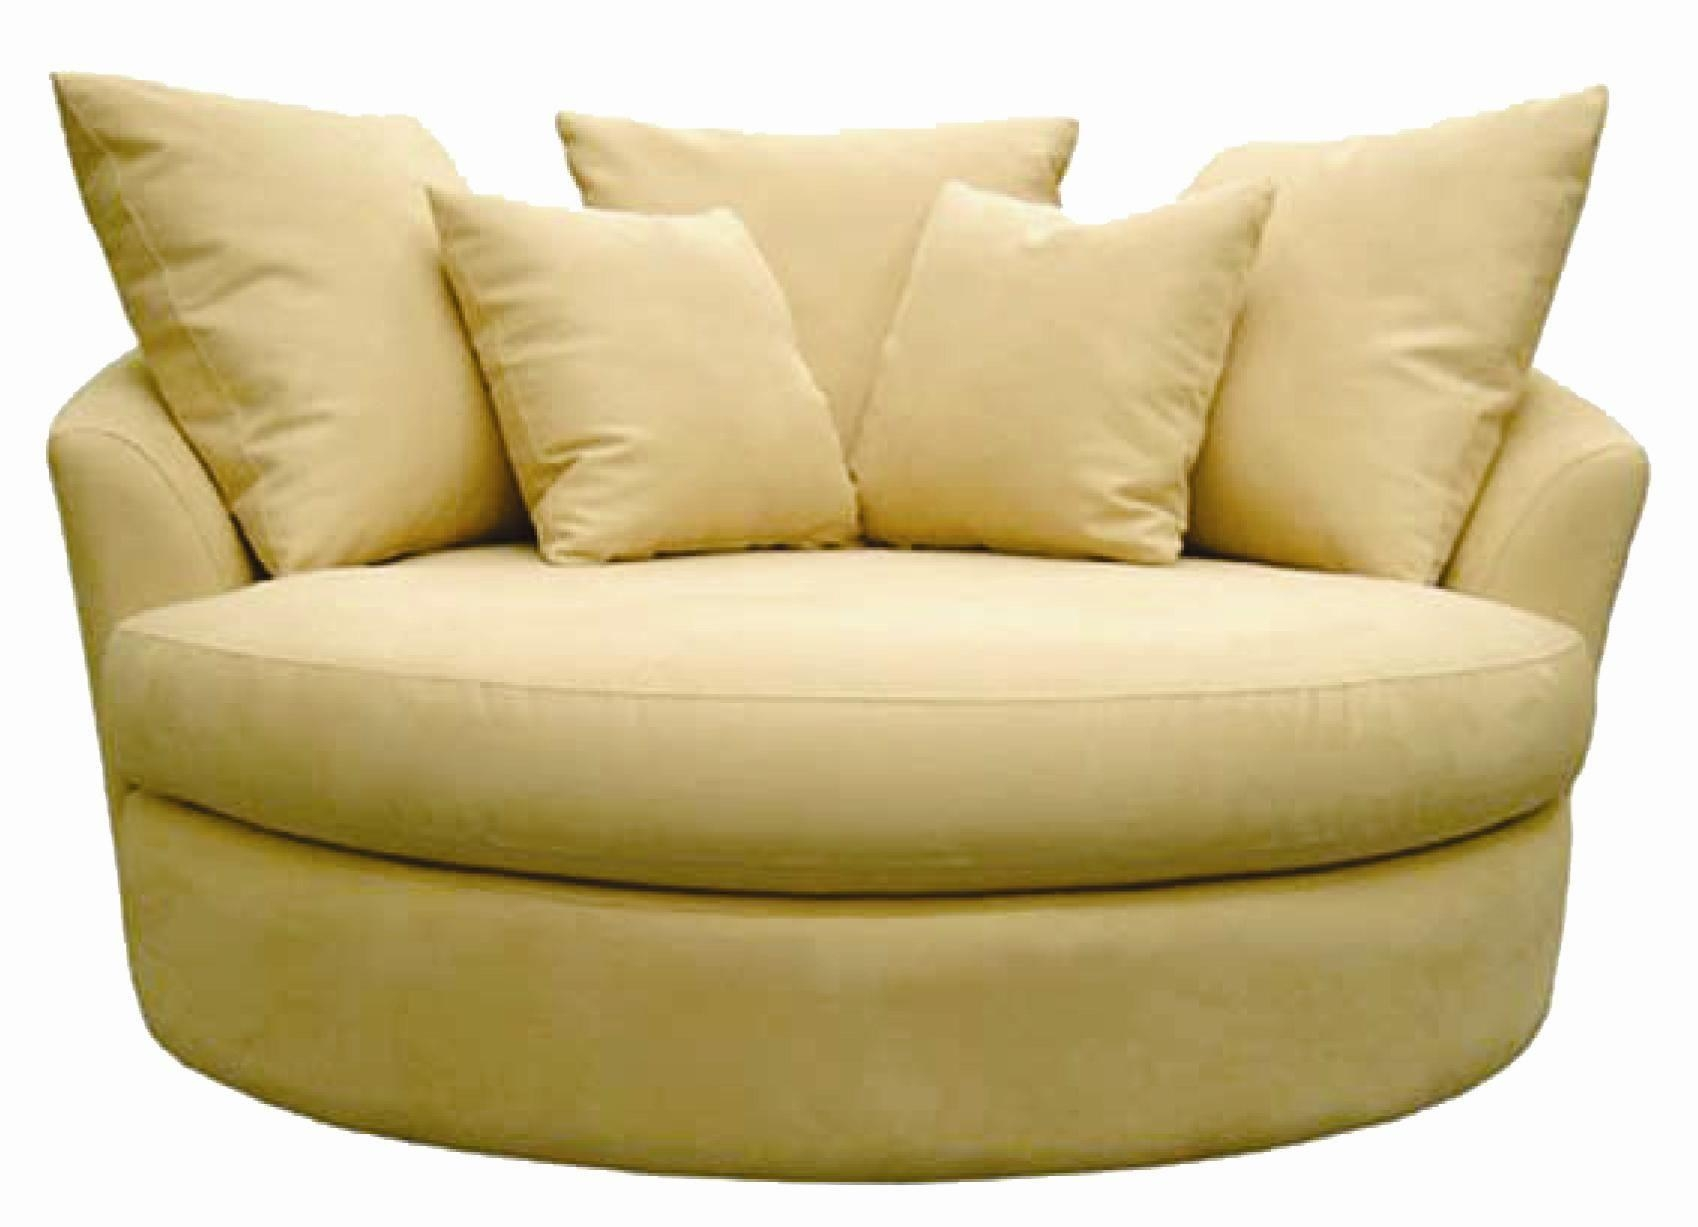 Surprising Round Swivel Sofa Chair Armchairs And Oversized Living Throughout Cuddler Swivel Sofa Chairs (View 9 of 20)